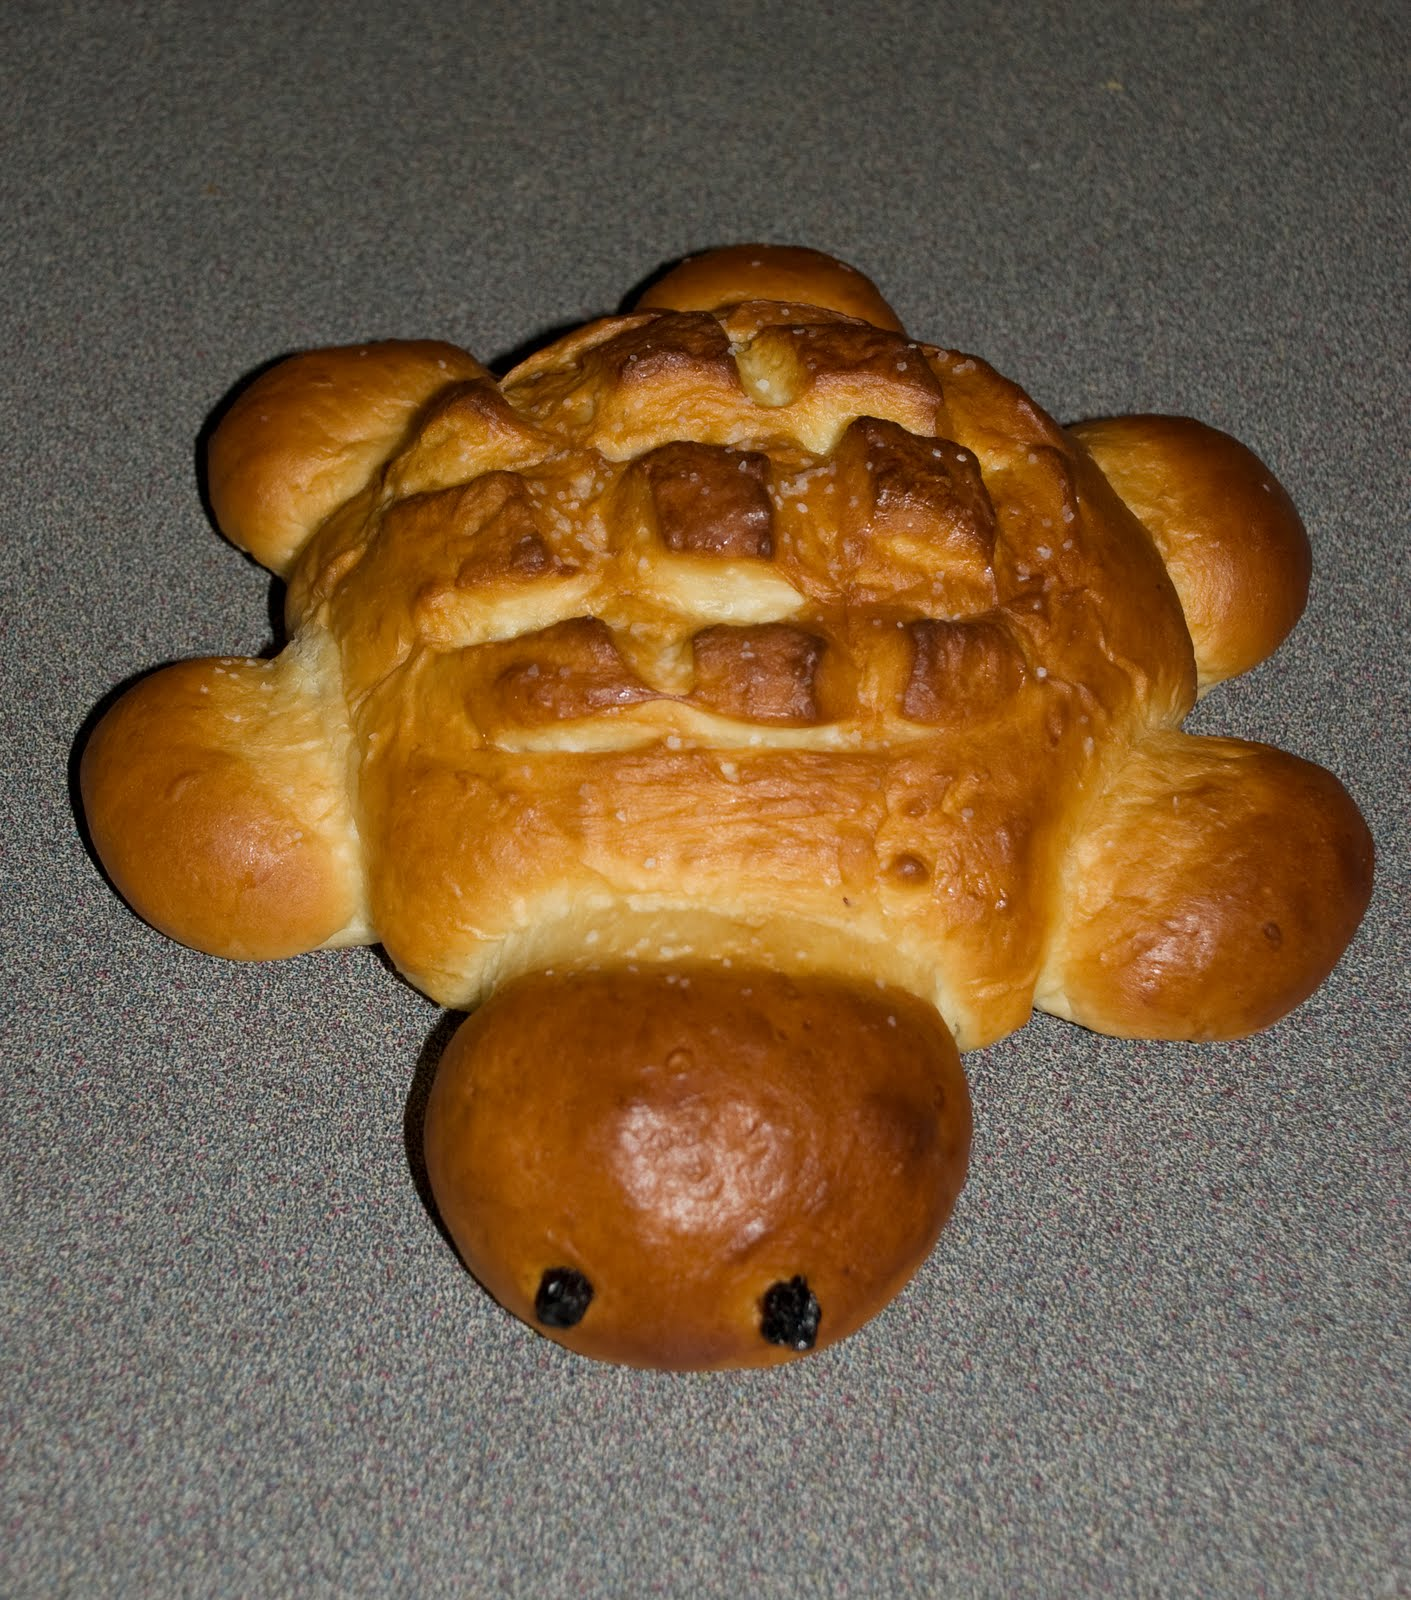 Turtle Bread Recipe Turtle bread 2 1/2 tsp yeast